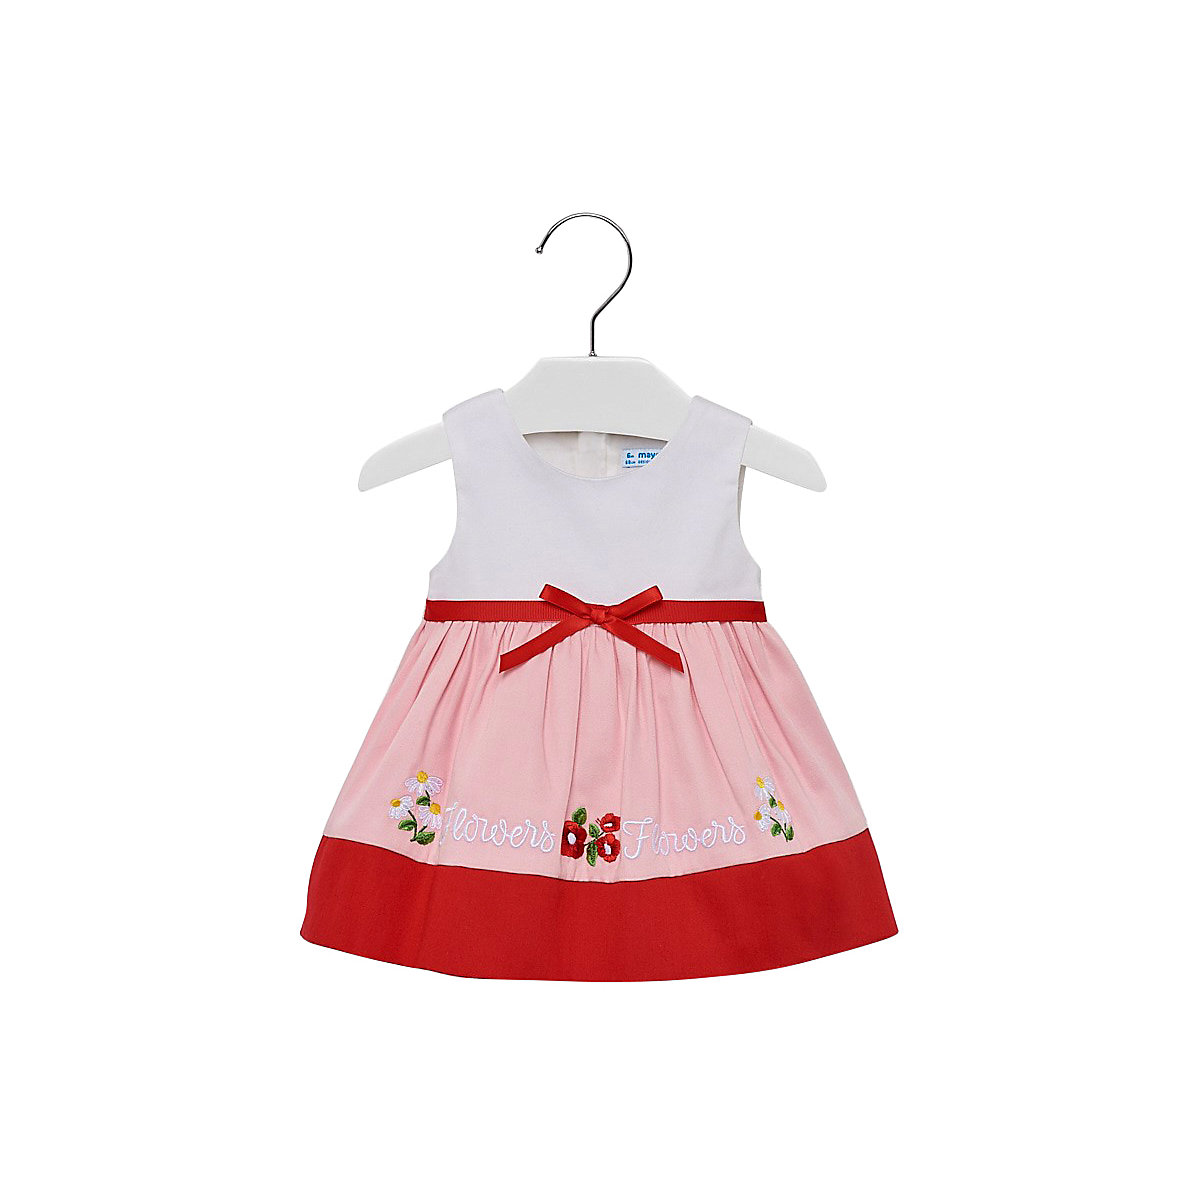 MAYORAL Dresses 10689178 Girl Children fitted pleated skirt Red Cotton Casual Print Knee-Length Sleeveless Sleeve foliage print pleated skirt